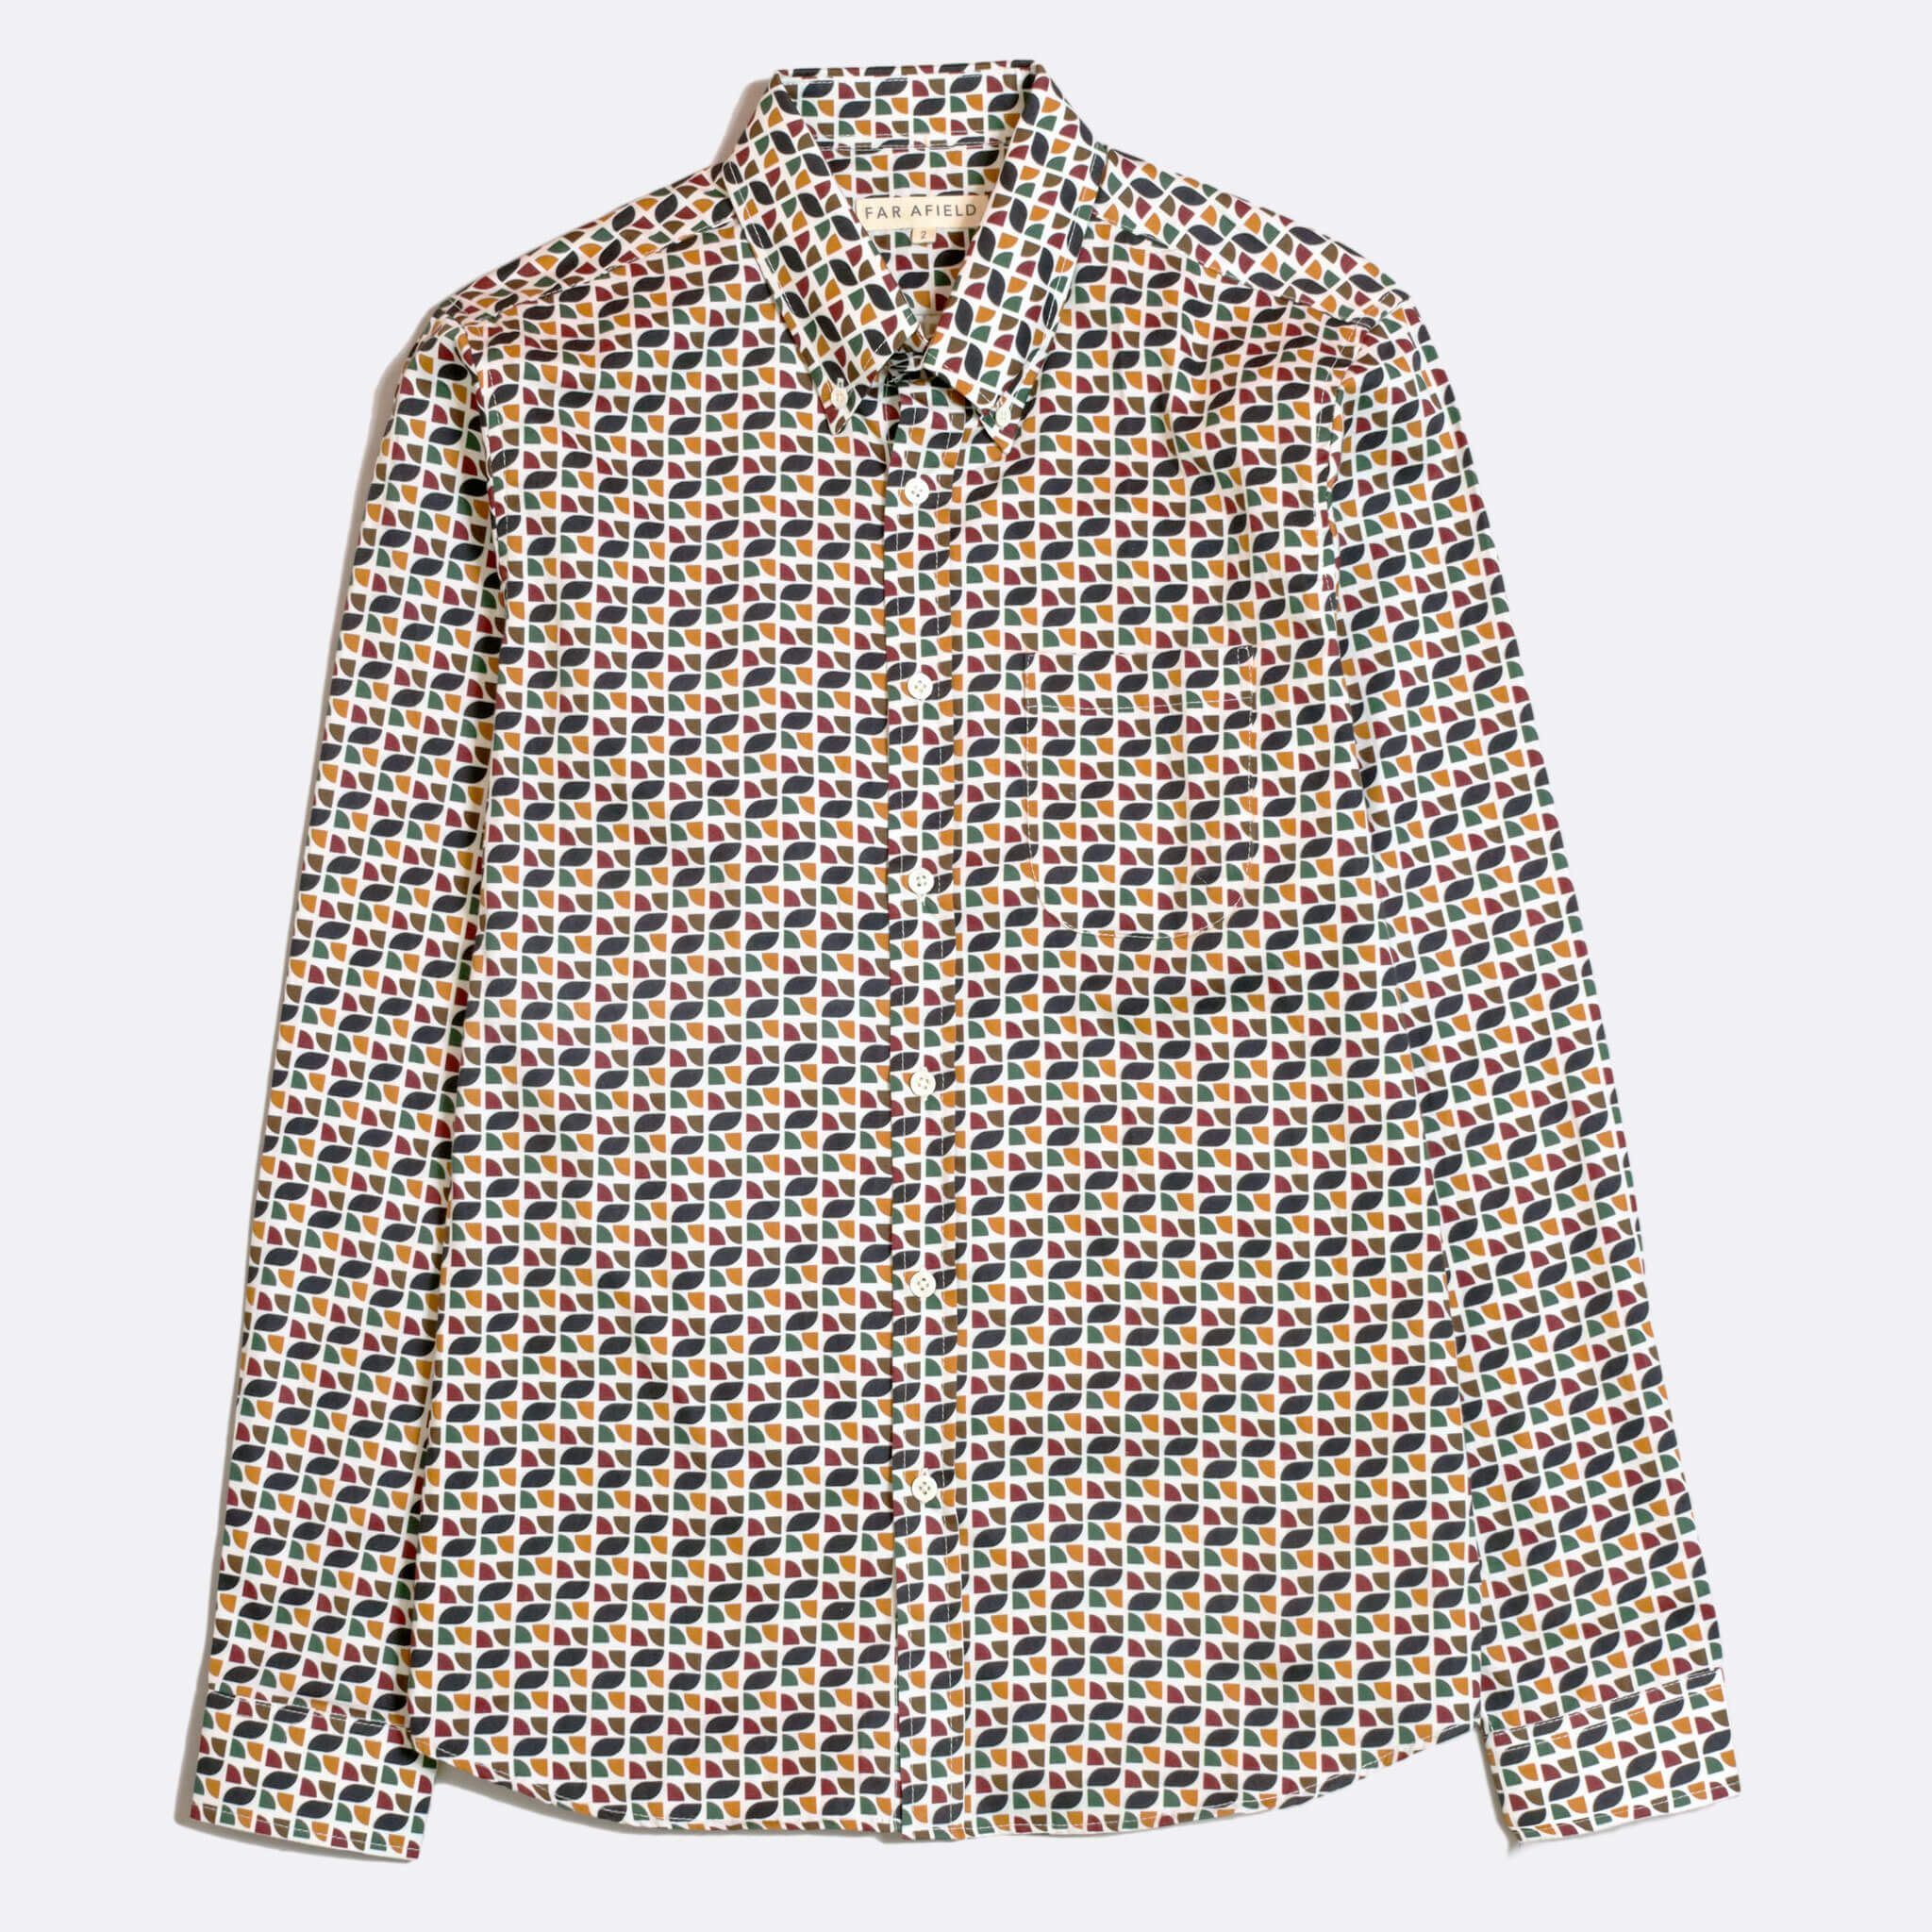 CAMISA FAR AFIELD MOD BUTTON DOWN POPOVA FLORAL